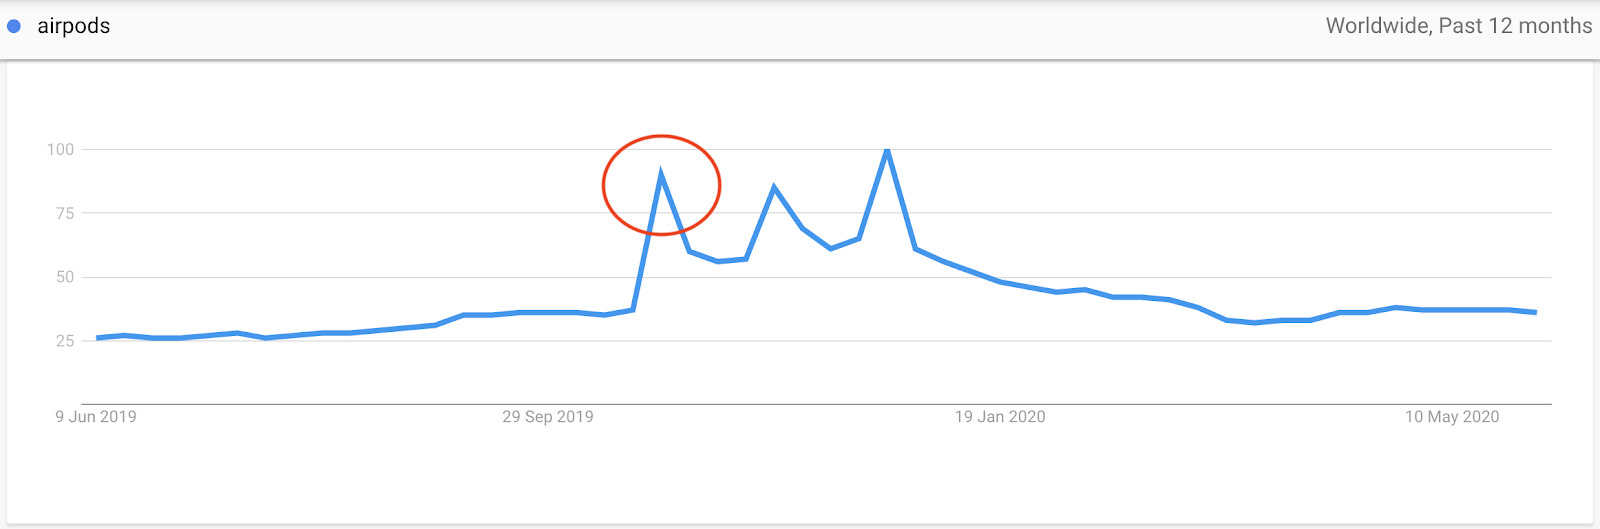 Interest for Airpods on Google Trends